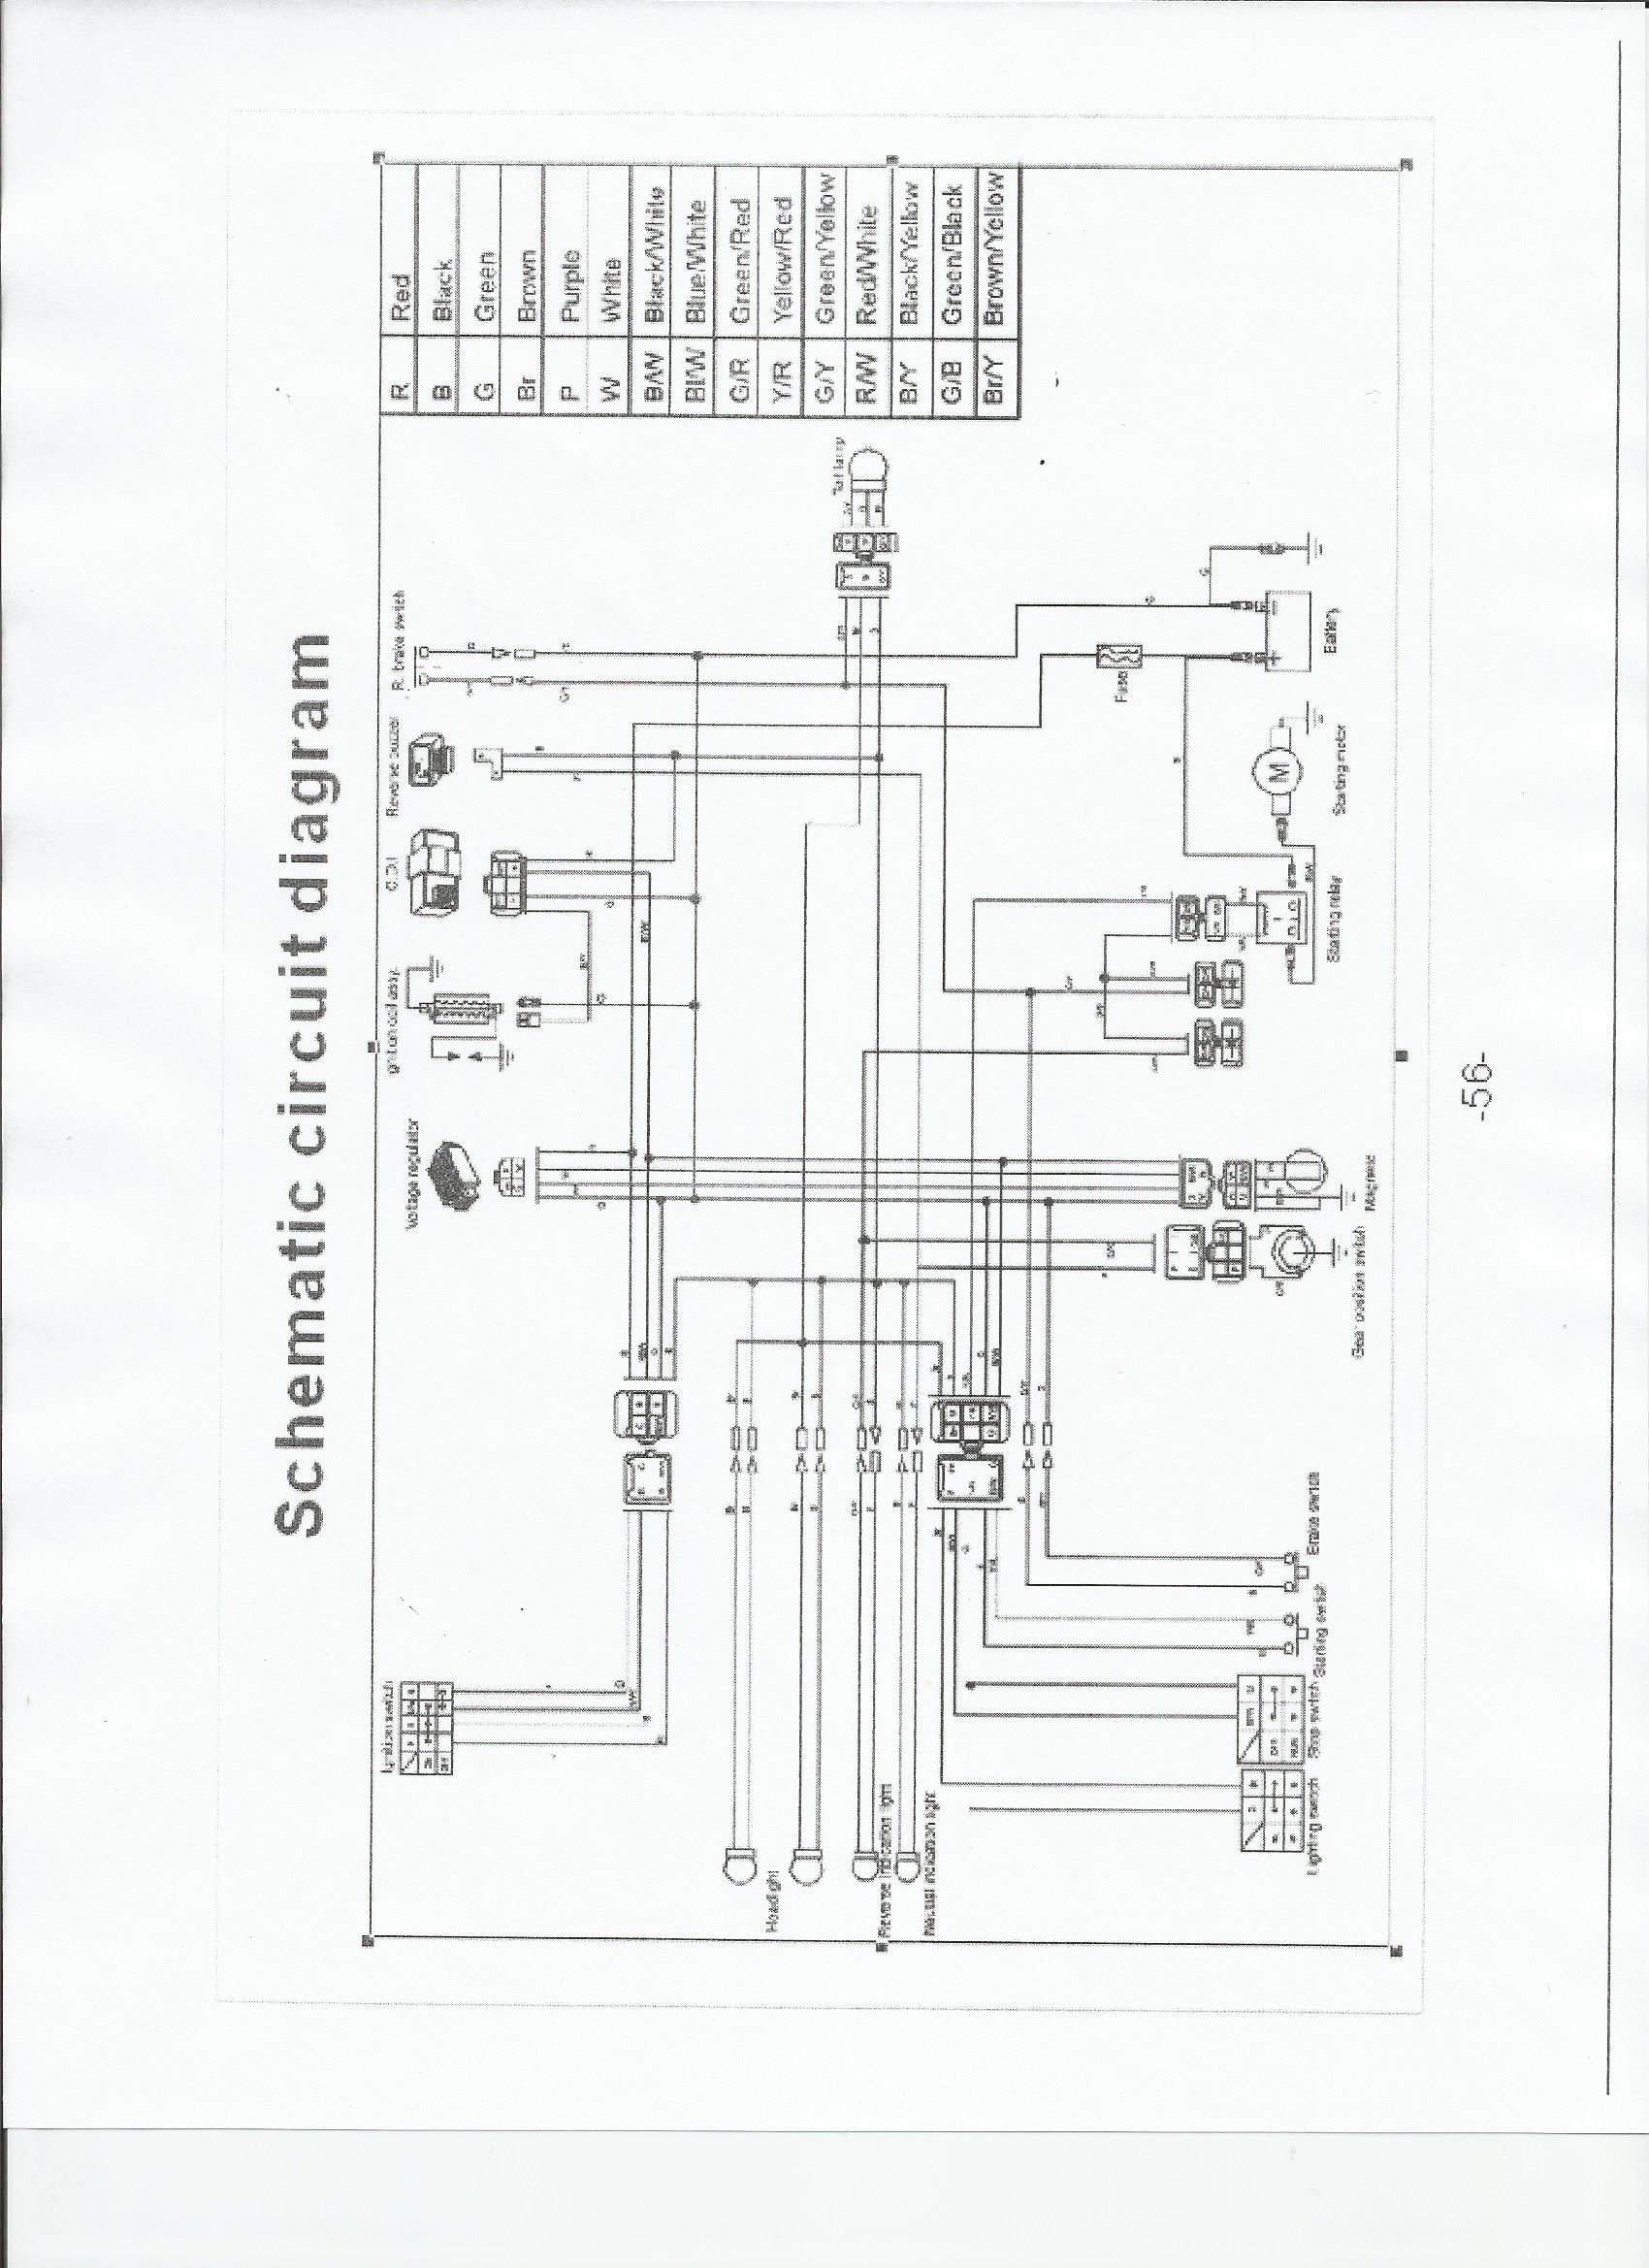 tao tao wiring schematic taotao mini and youth atv wiring schematic familygokarts support Yamaha 90Cc 4 Wheeler at crackthecode.co